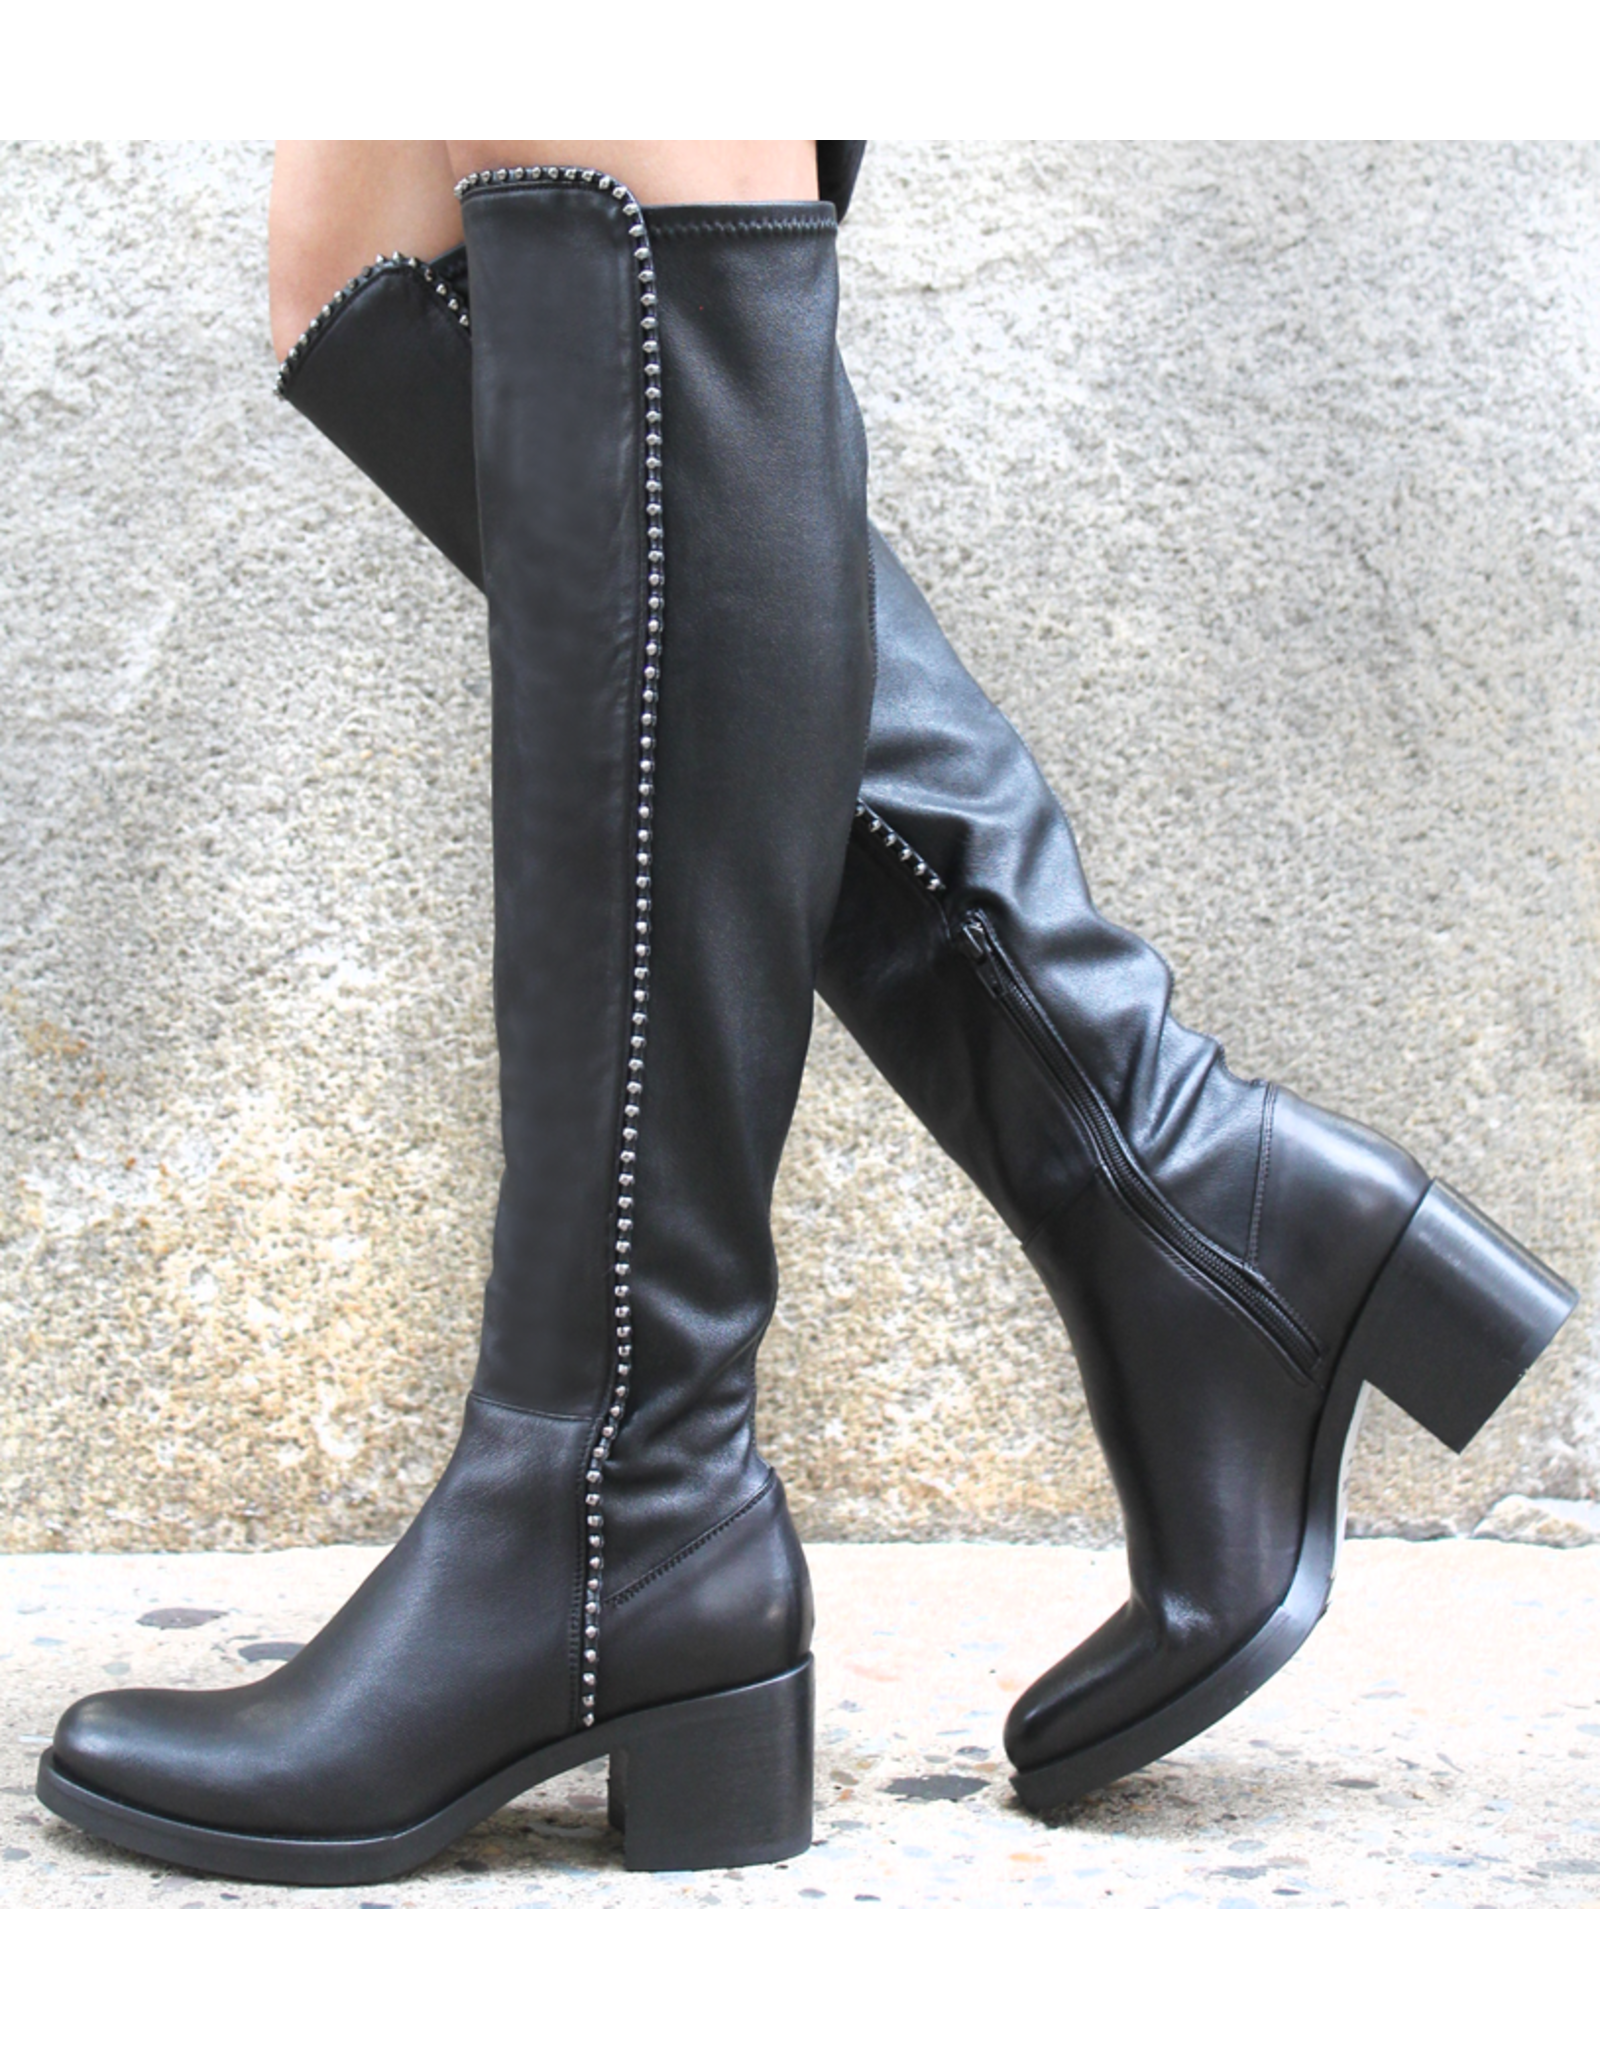 Now Now N36A Black Knee Boot w/Studs 7140